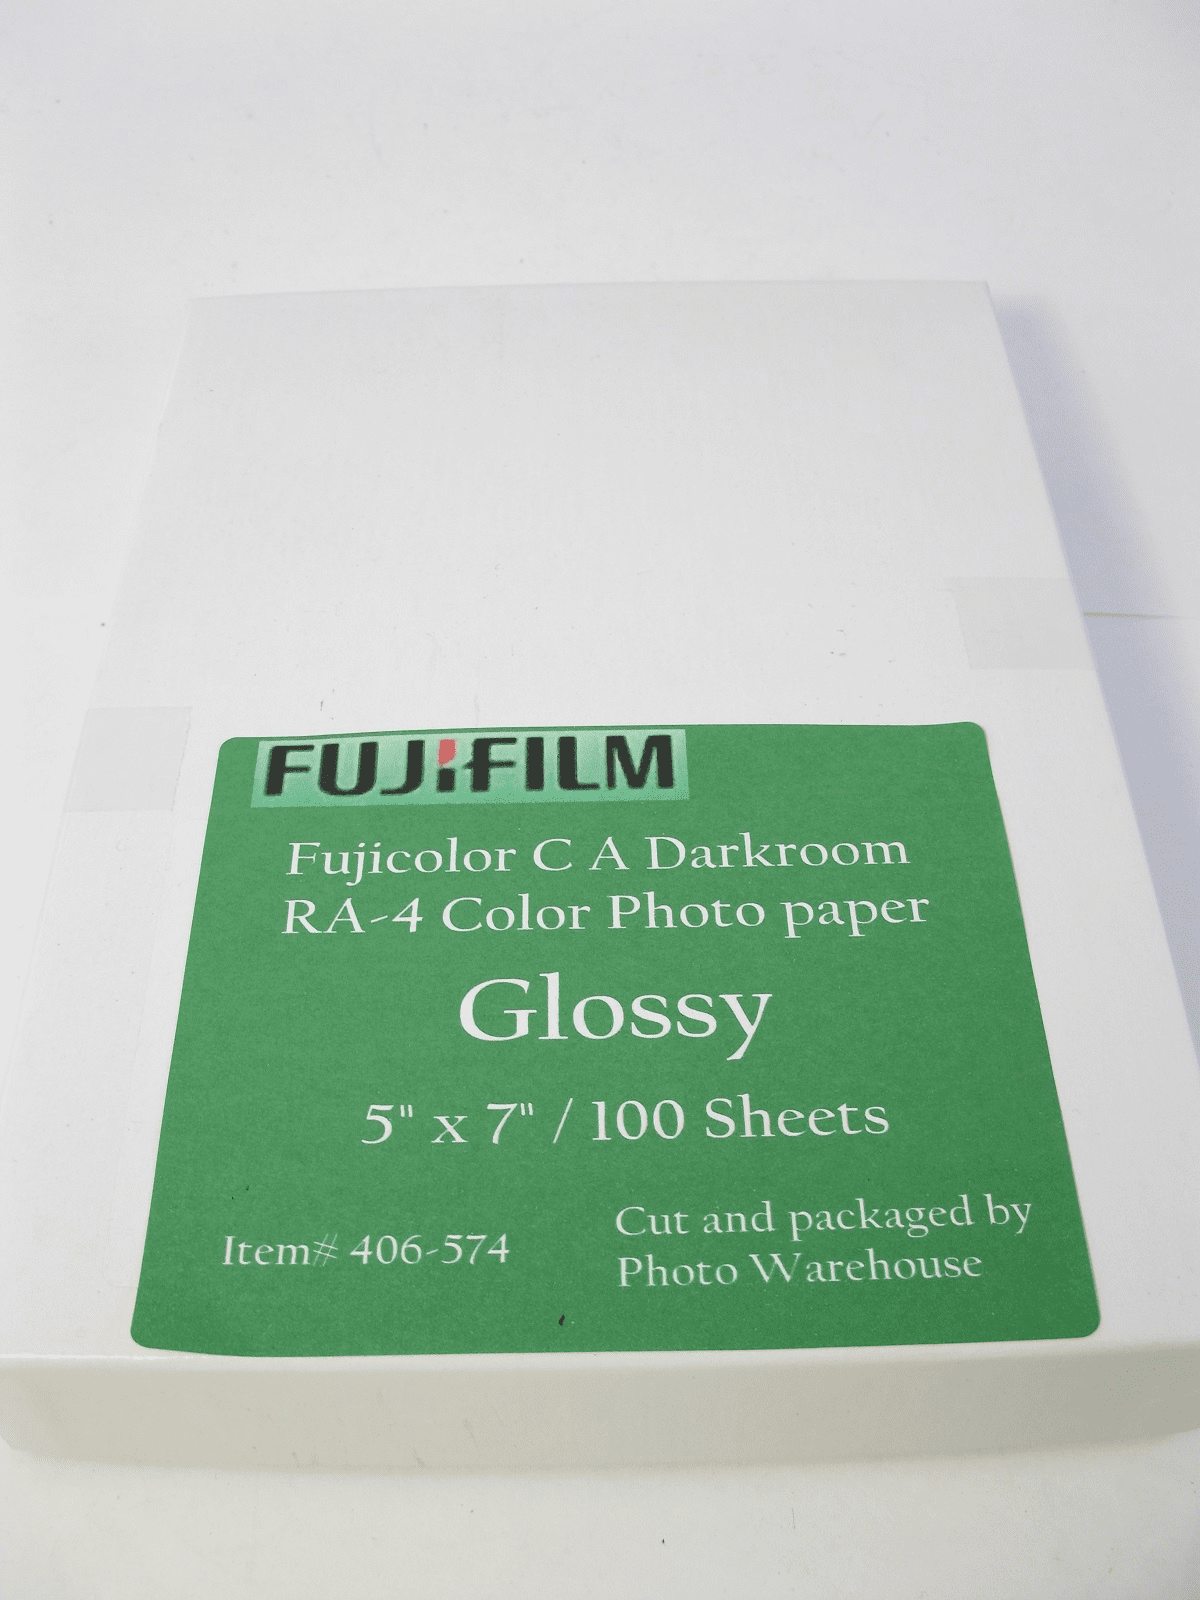 "Fujicolor C A Darkroom  RA-4 Color Photo paper 5"" x 7"" / 100 Sheets Glossy"